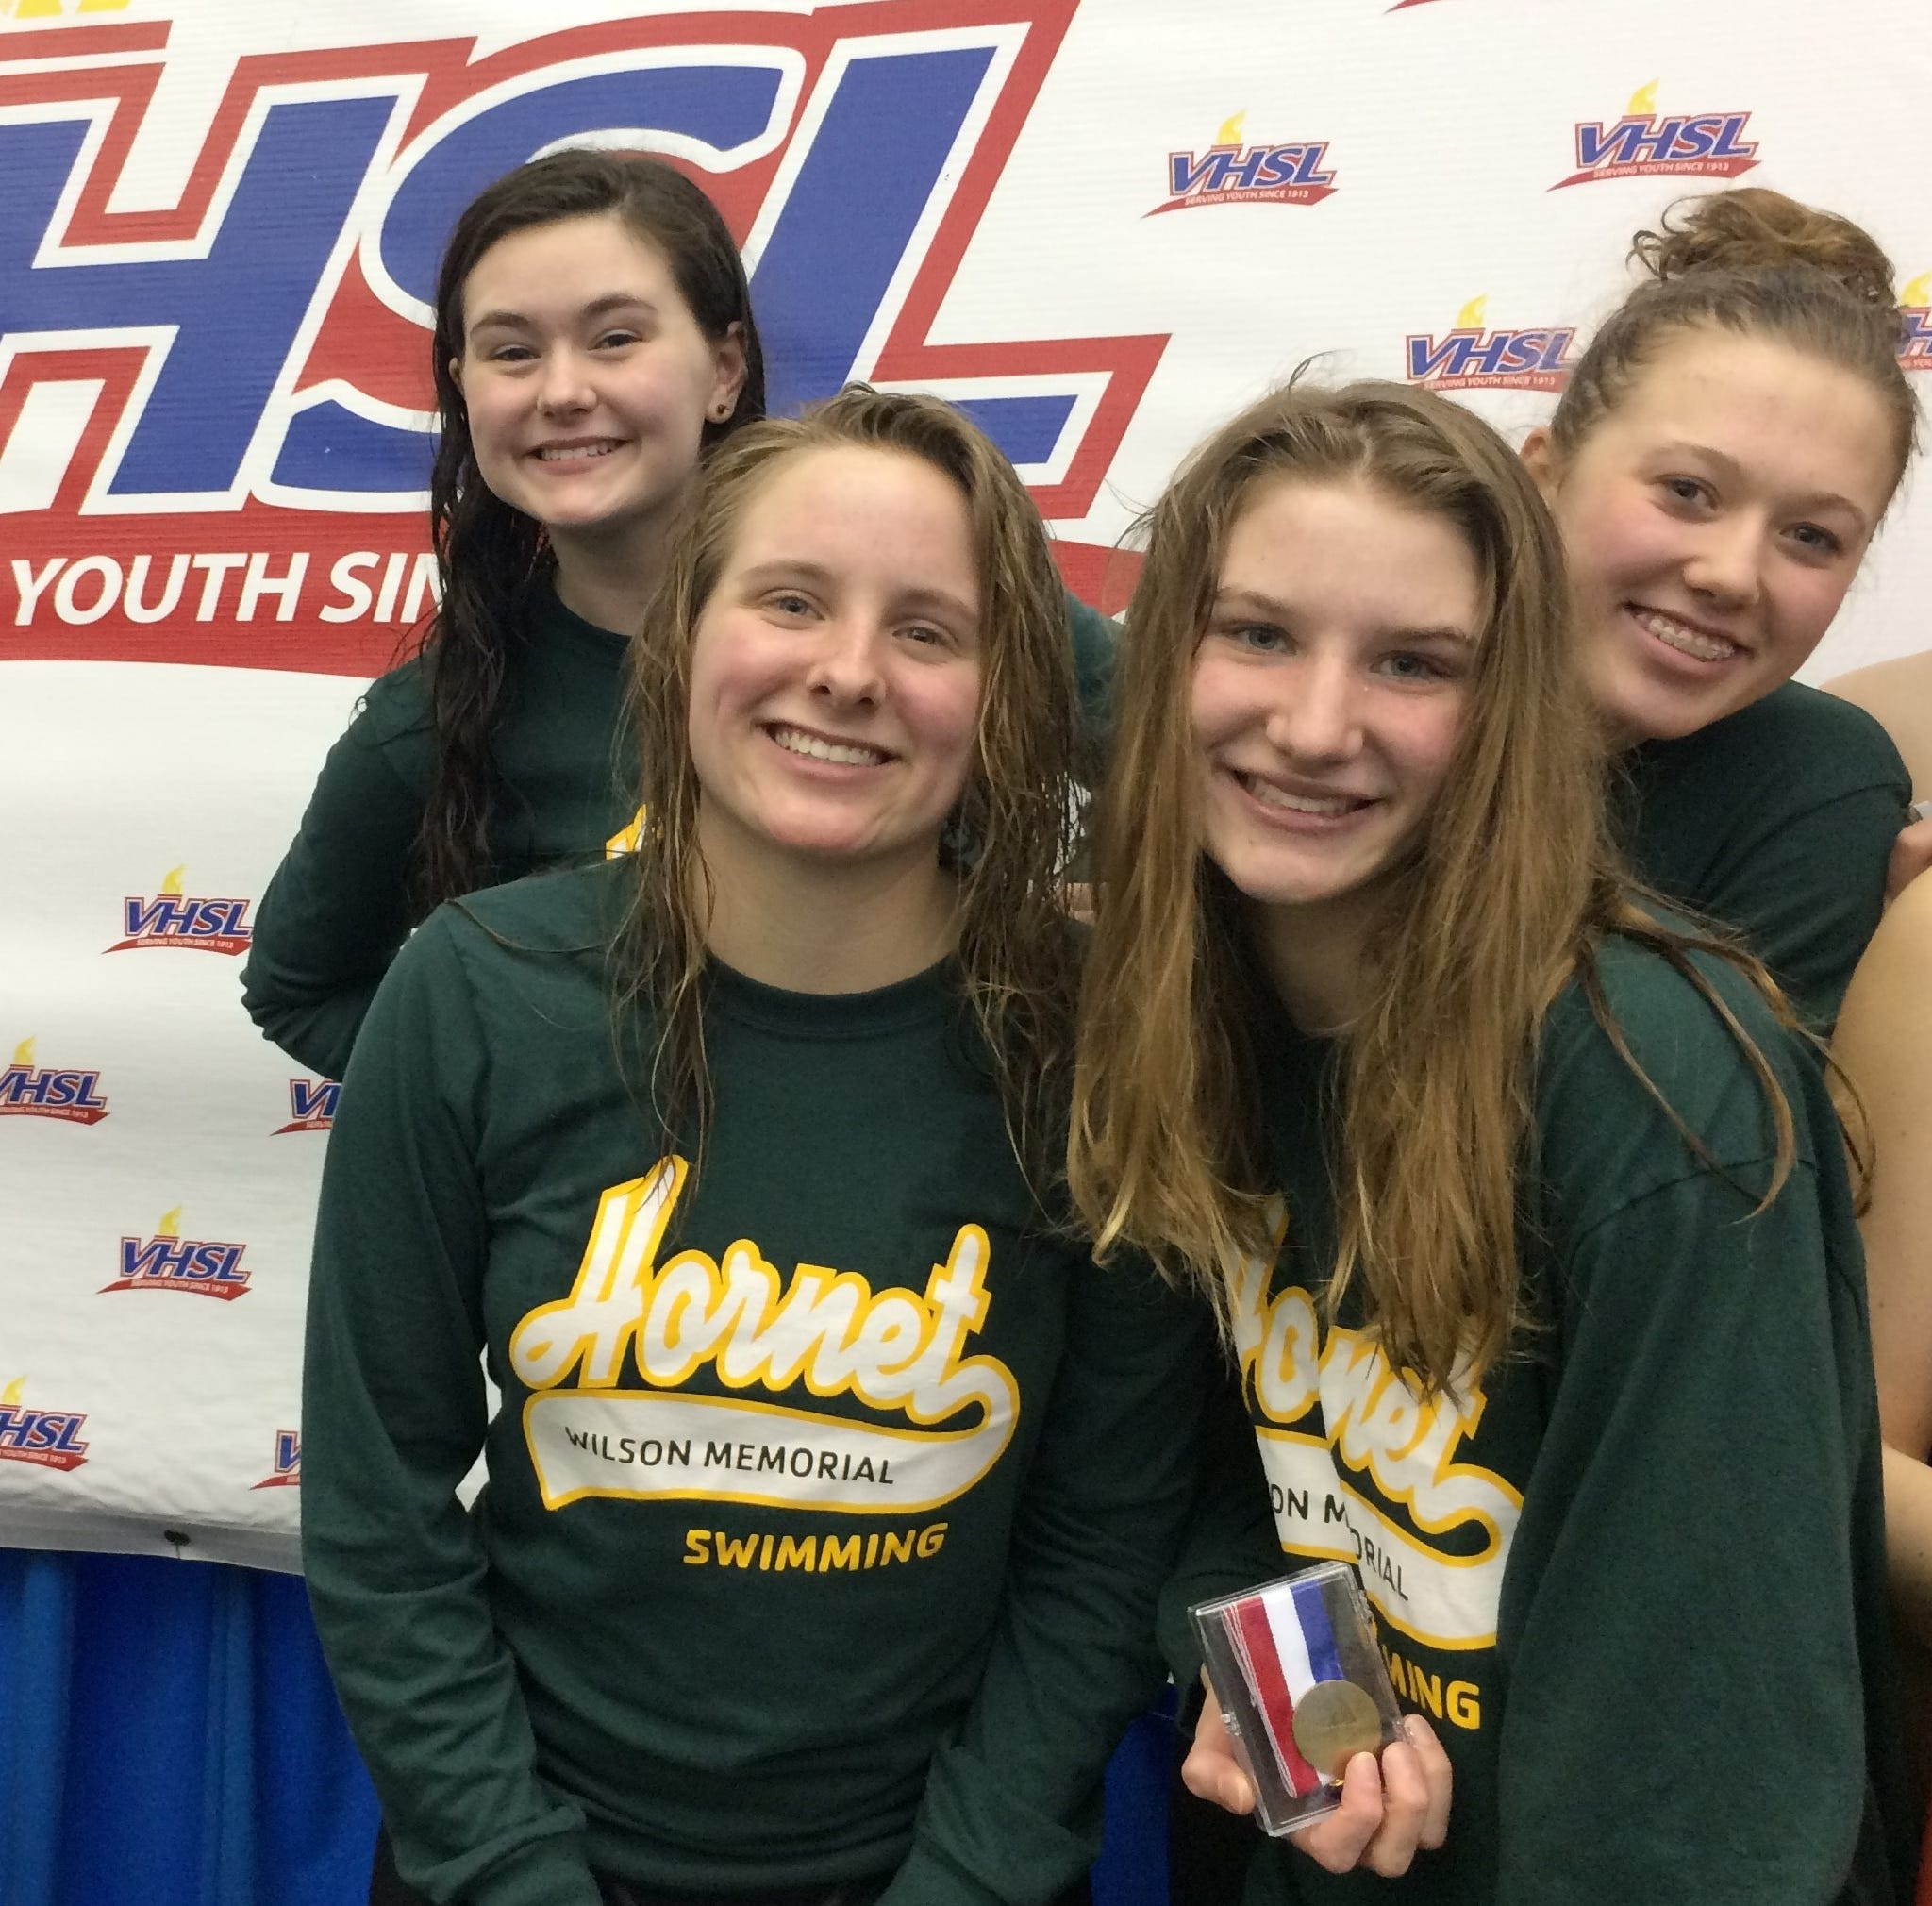 Wilson's 400 free relay team places third in state